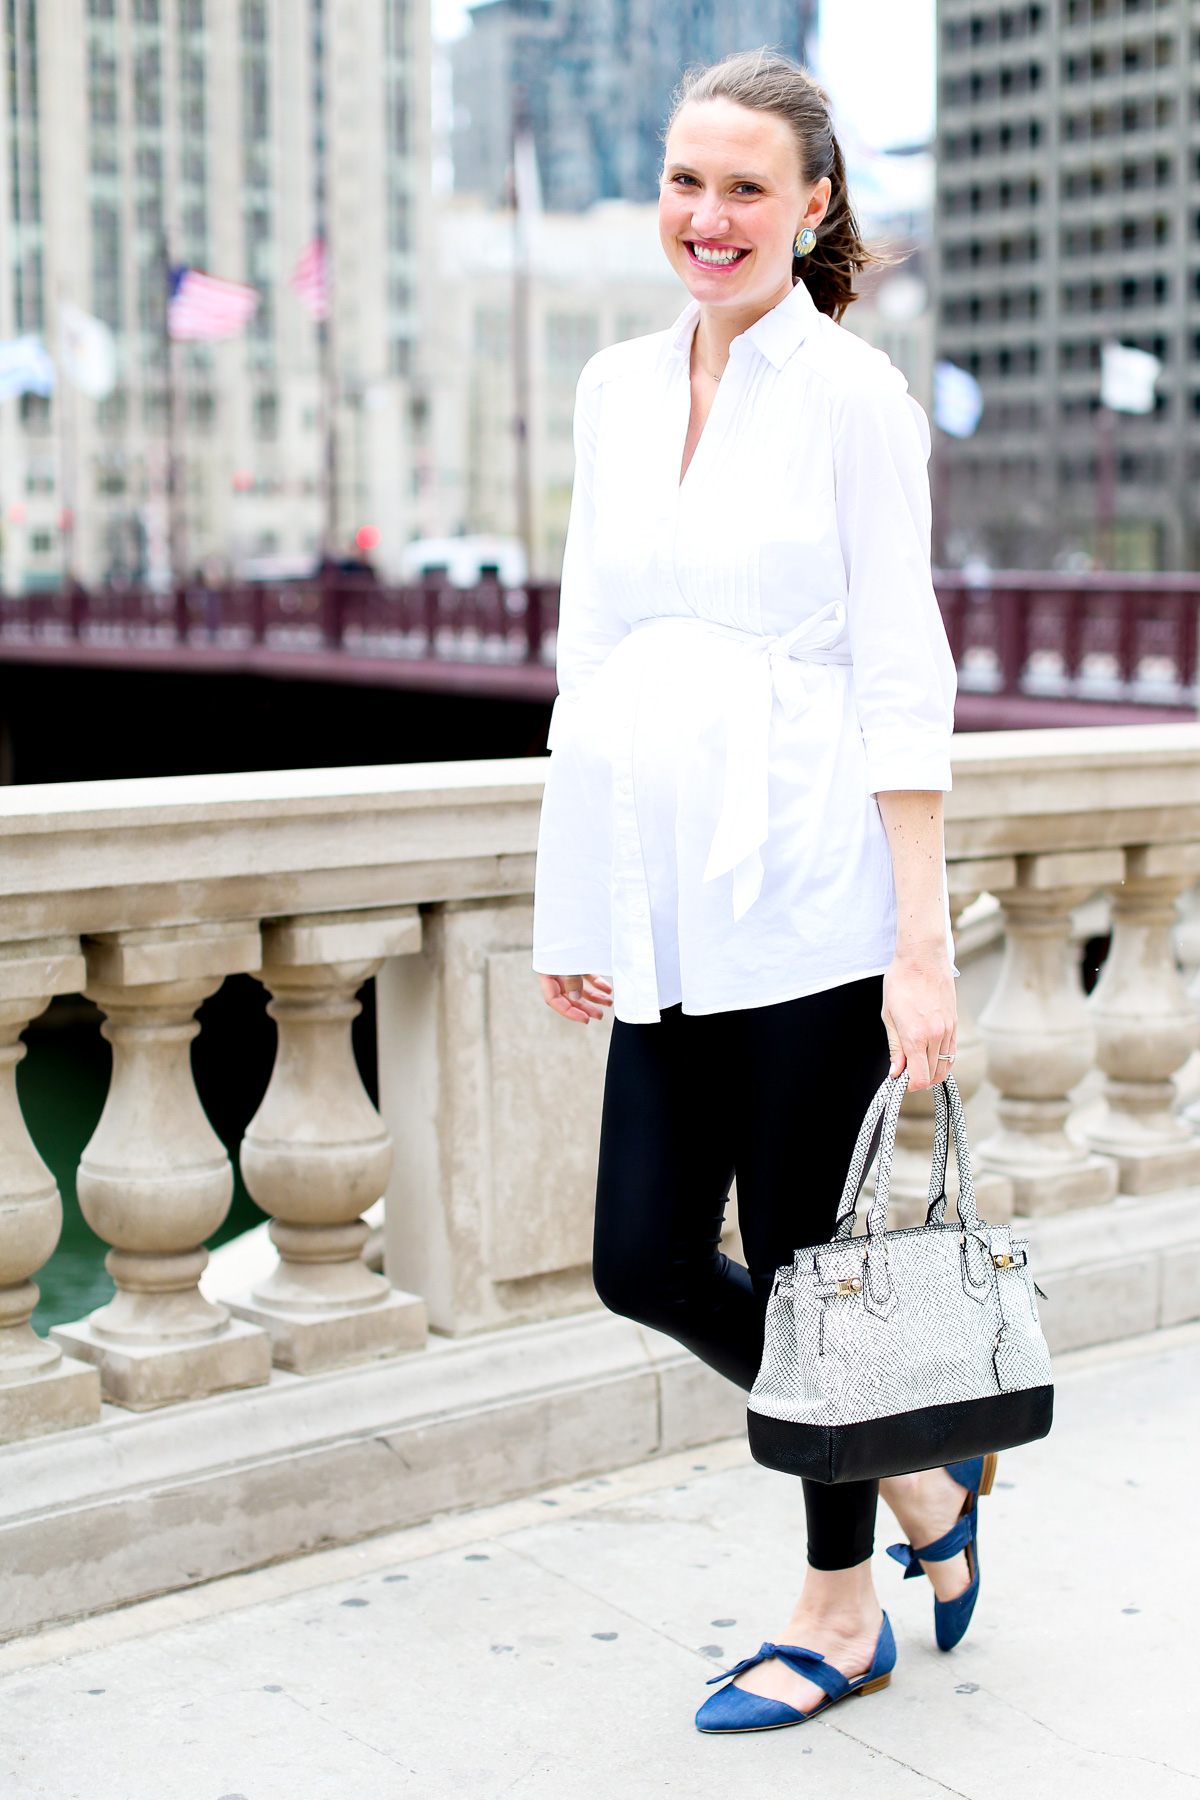 Pregnancy Style, Top US Fashion Bloggers